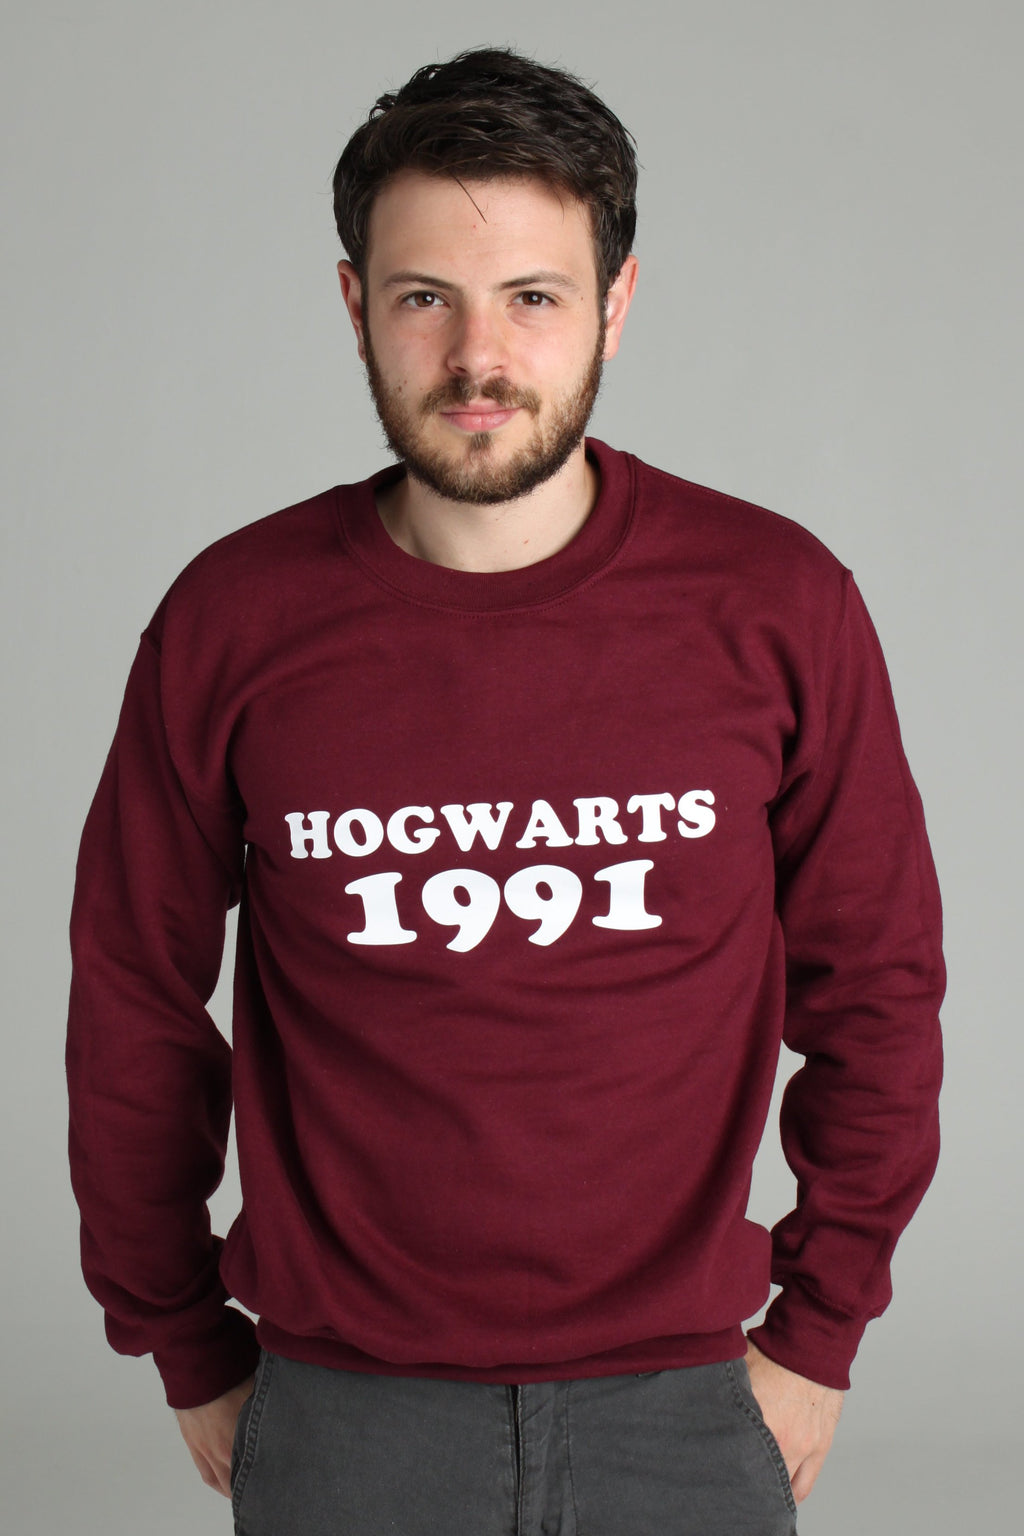 Harry Potter Hogwarts 1991 Sweatshirt